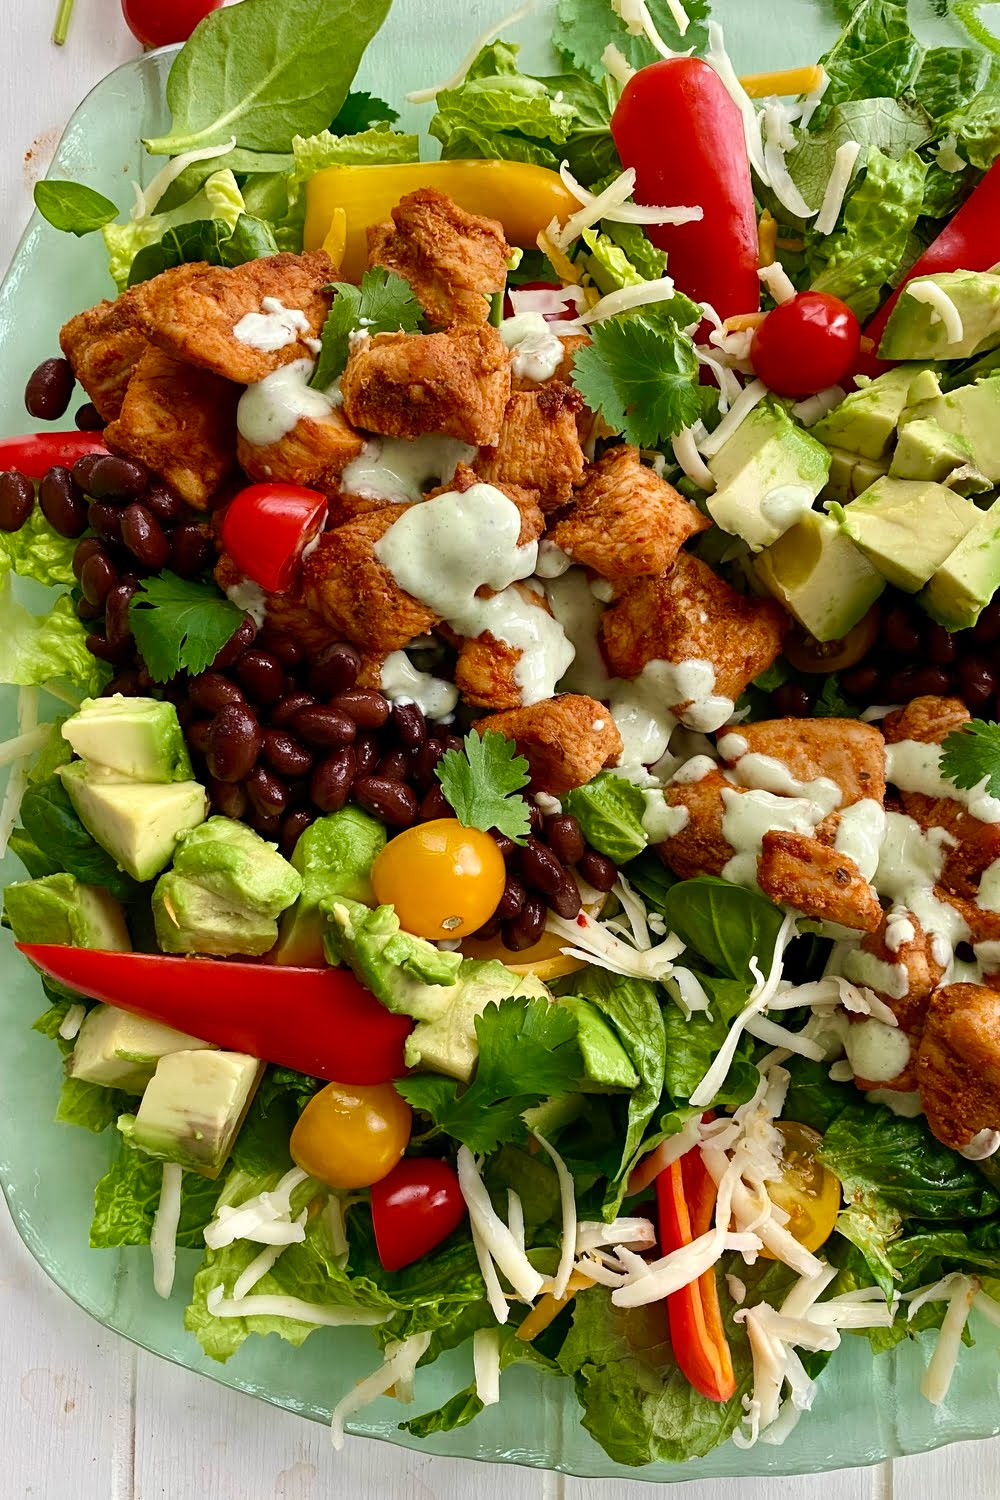 a delicious southwest salad with chicken, avocado, pepper jack cheese and black beans